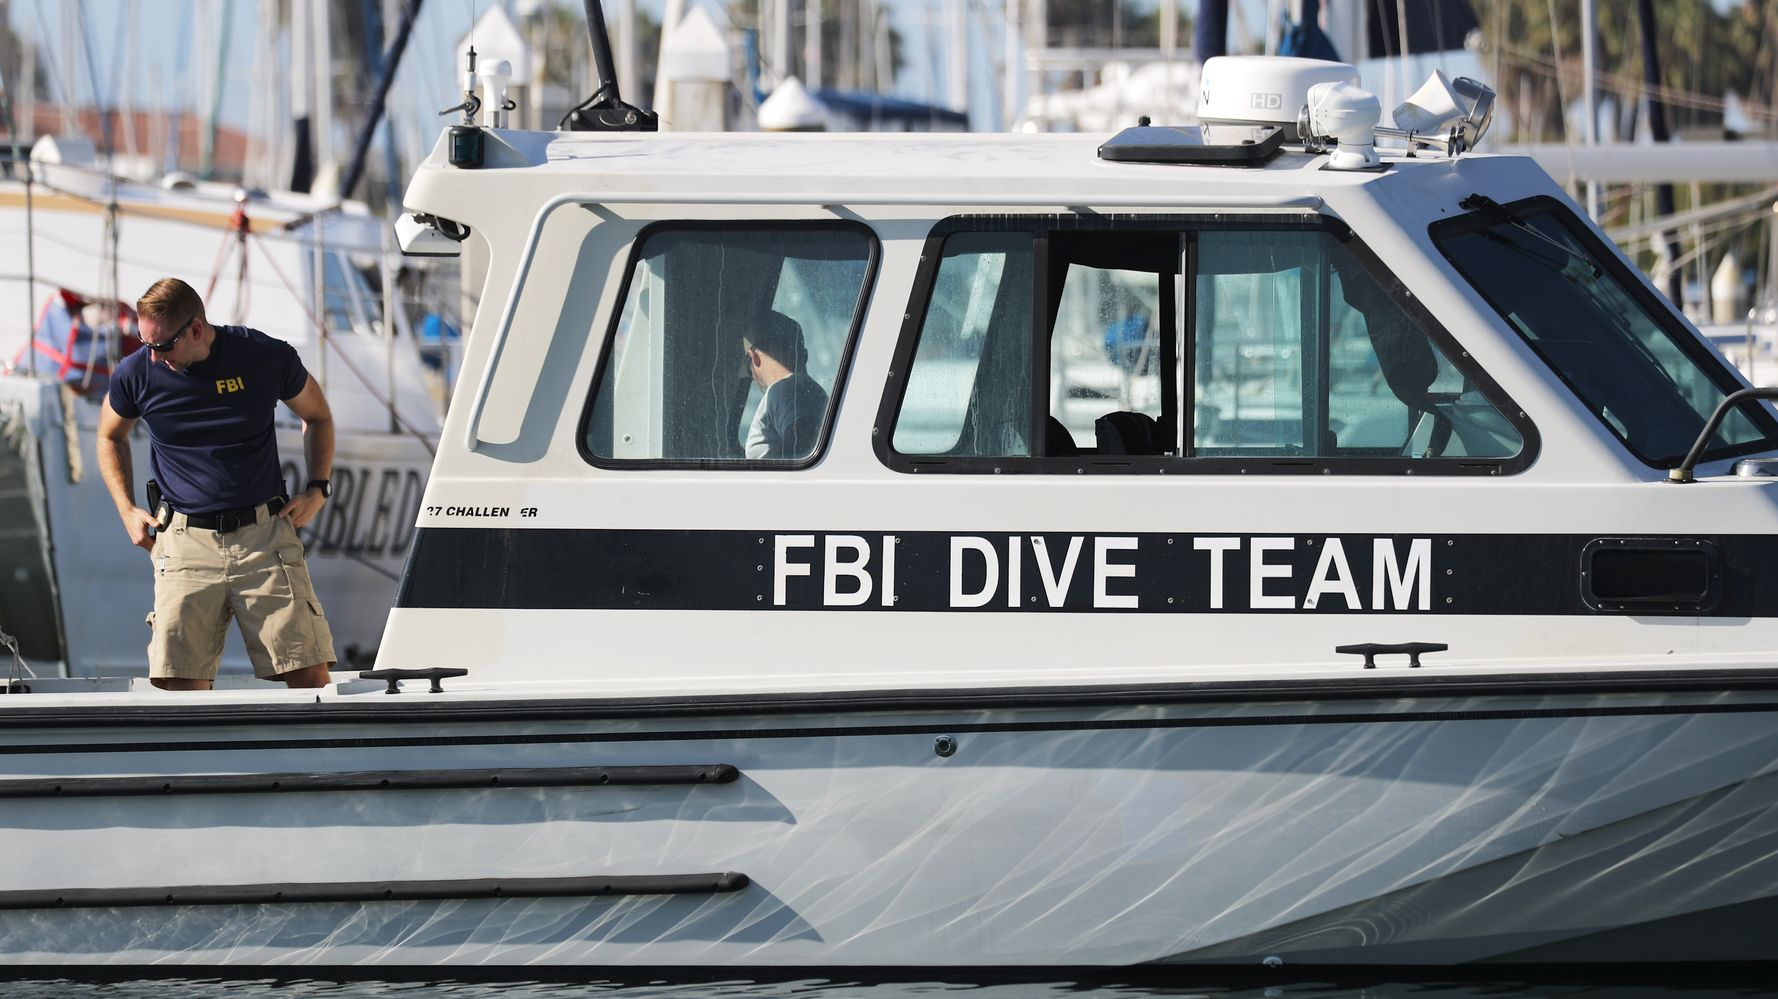 Westlake Legal Group 5d71a3673b0000e540cfaf10 Harrowing New Details Emerge About California Dive Boat Fire That Killed 34